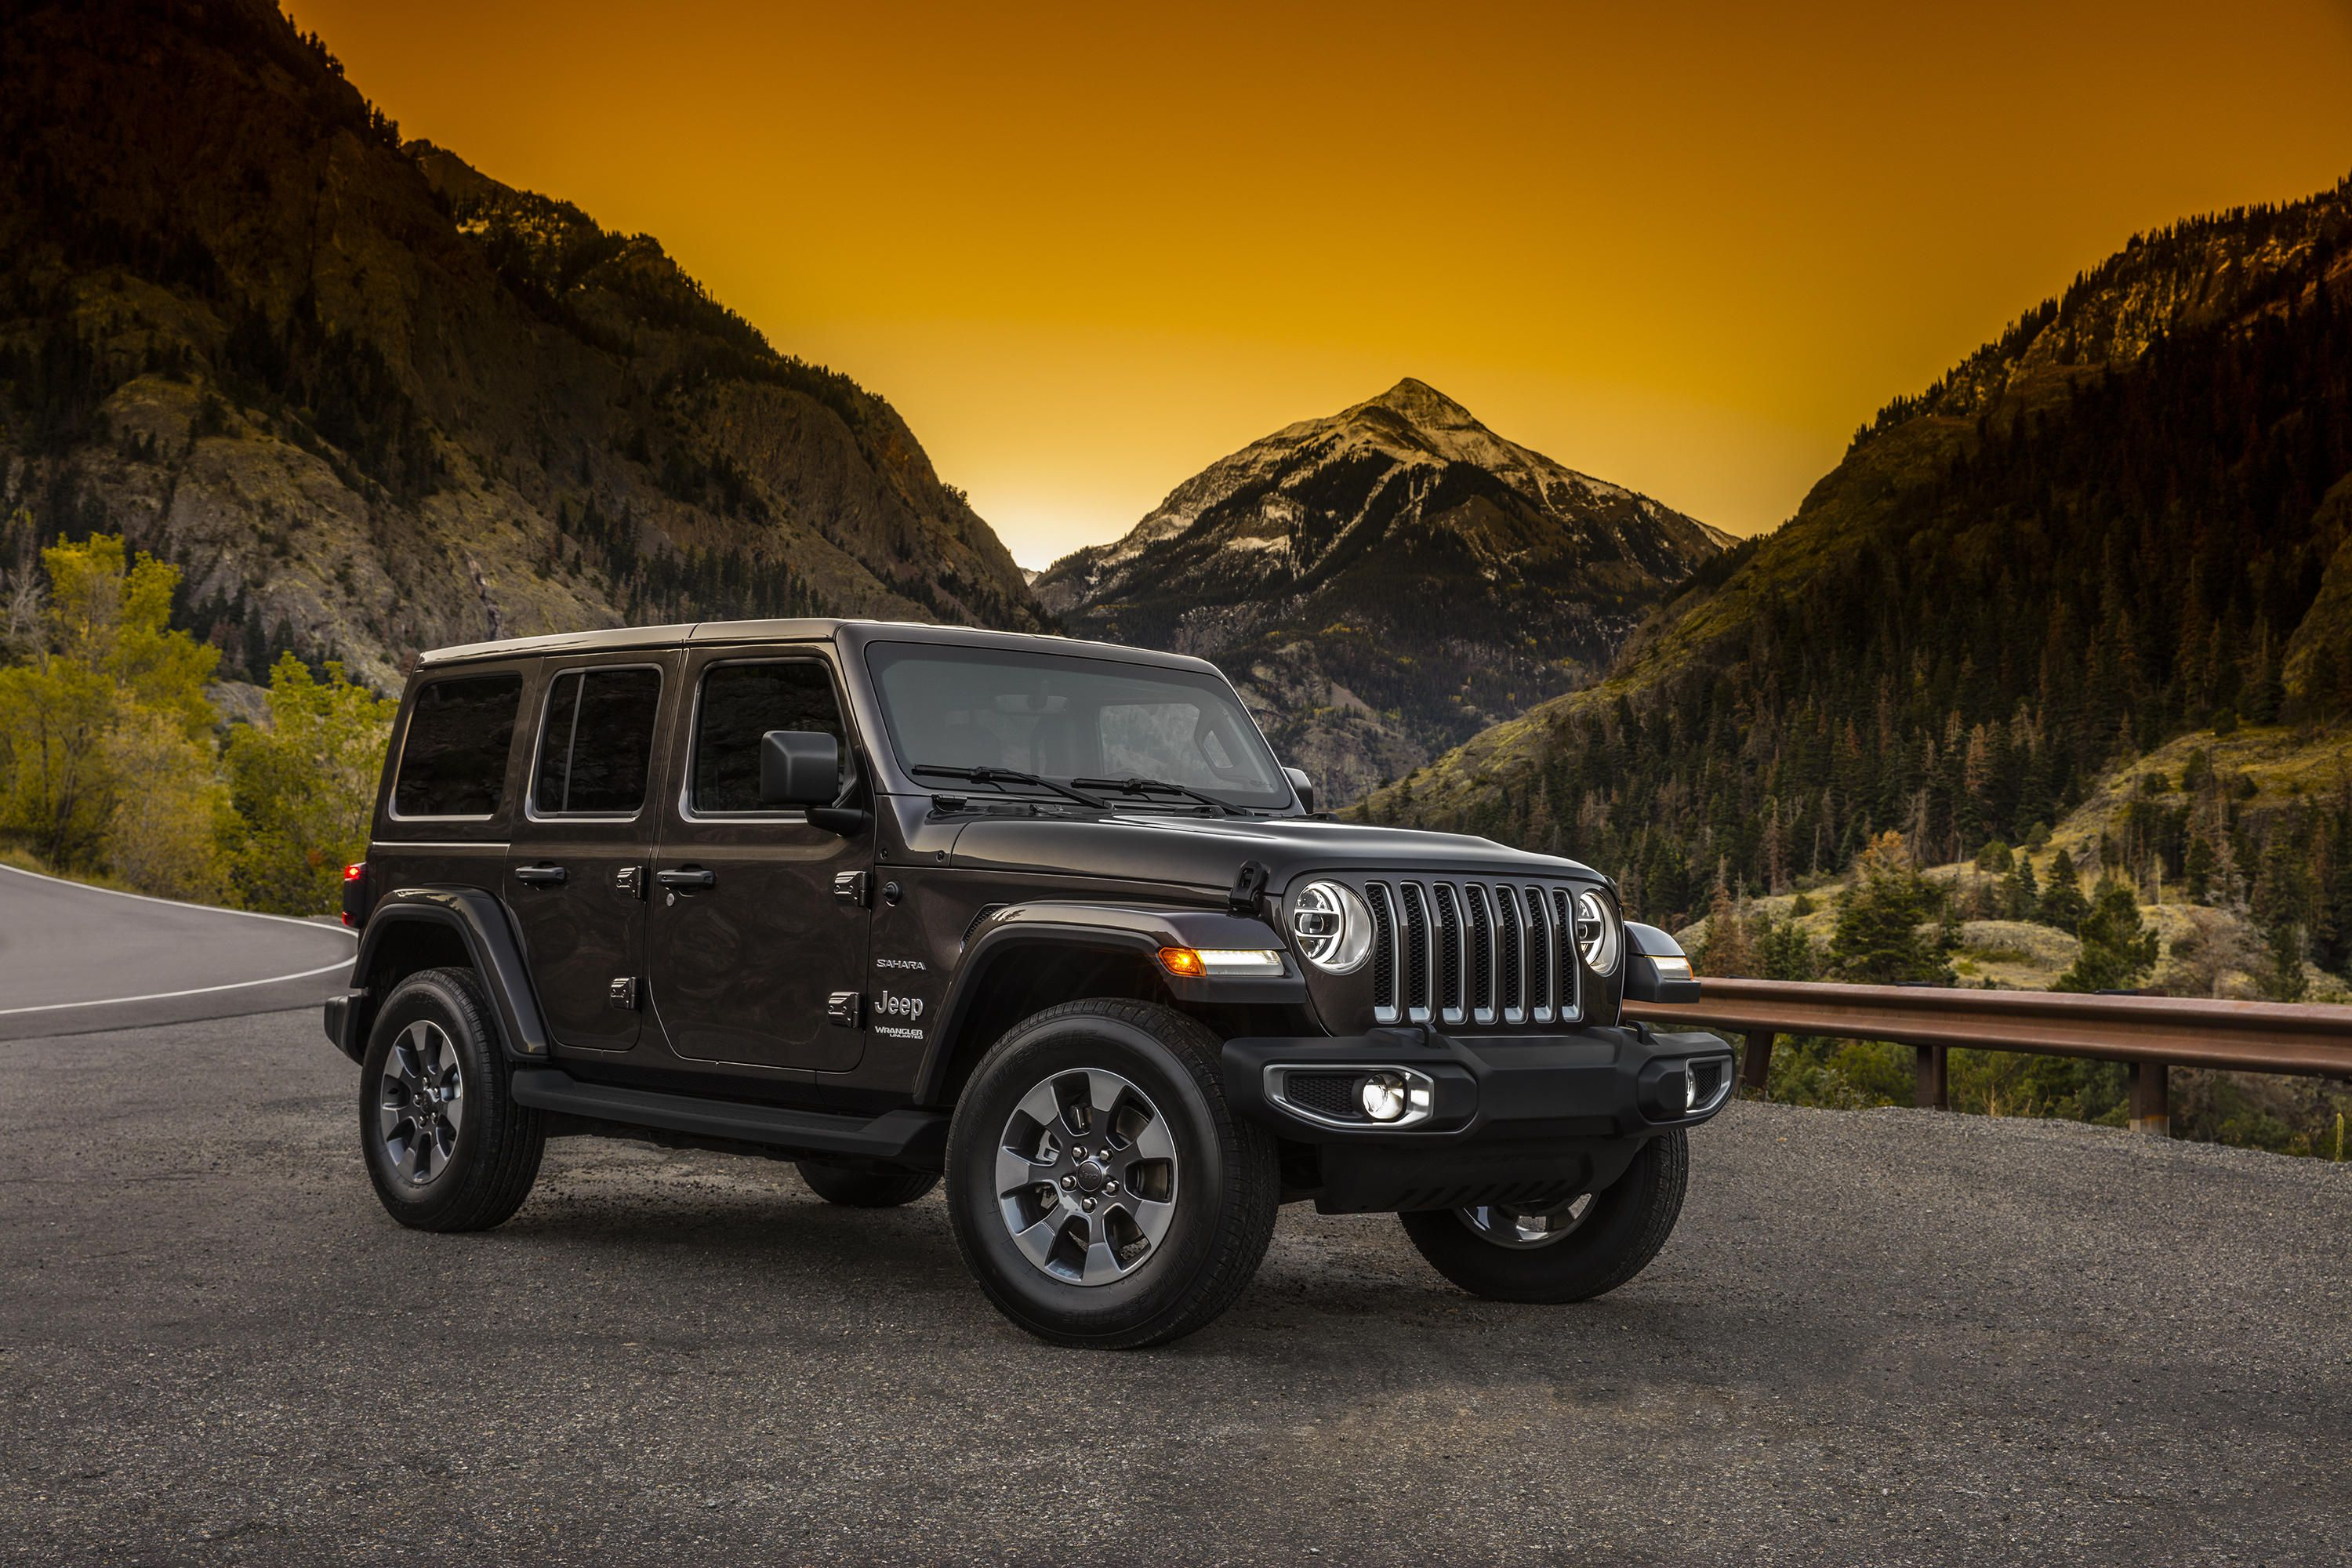 sema 2017 jeep shows off new wrangler and mopar accessories. Black Bedroom Furniture Sets. Home Design Ideas